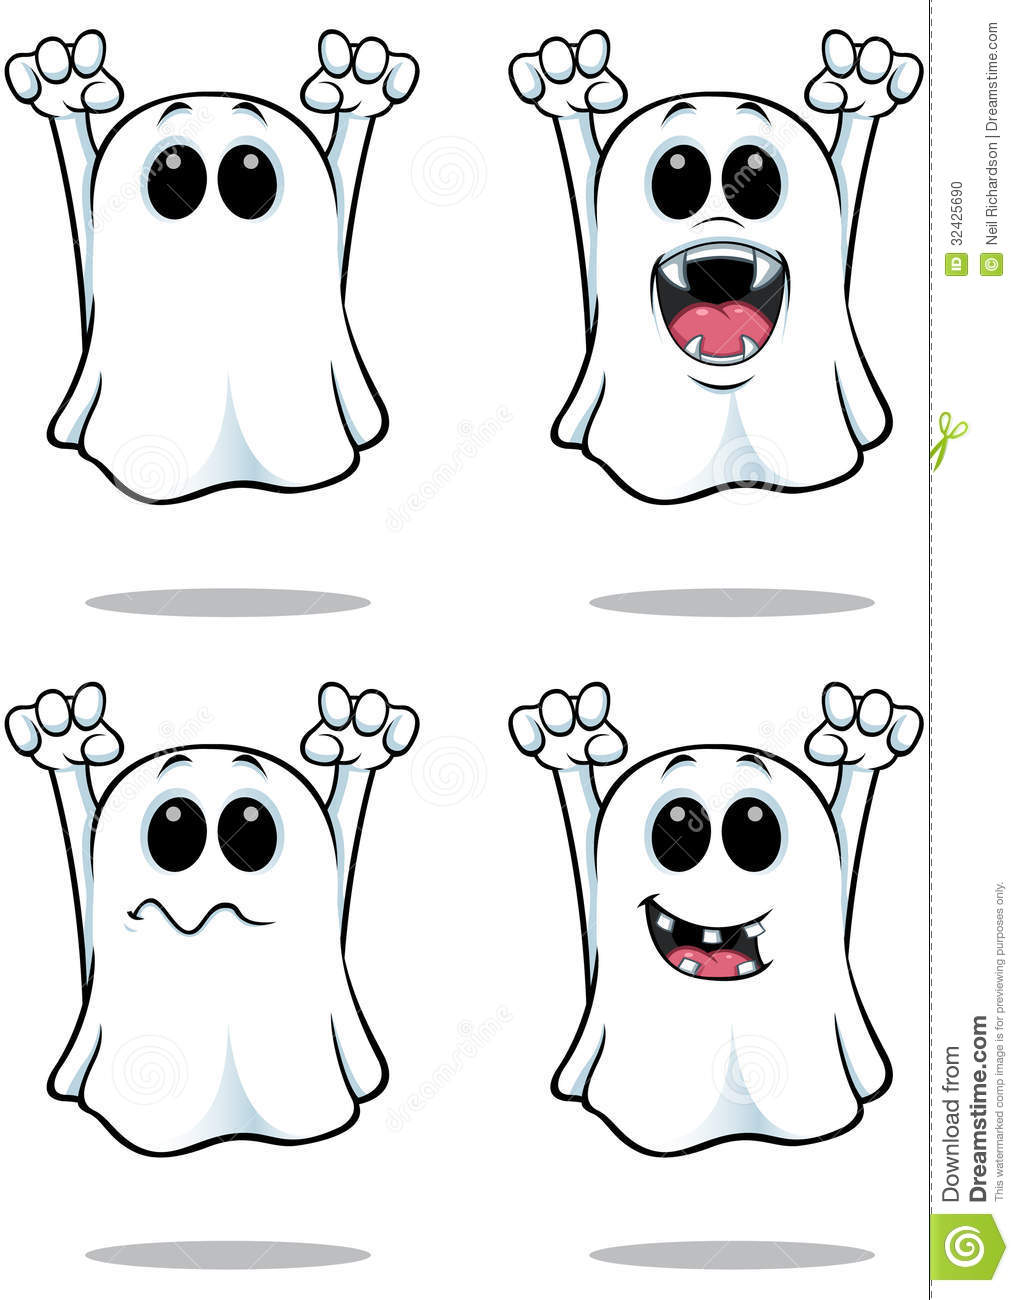 cartoon ghost illustration with 4 different facial expressions.